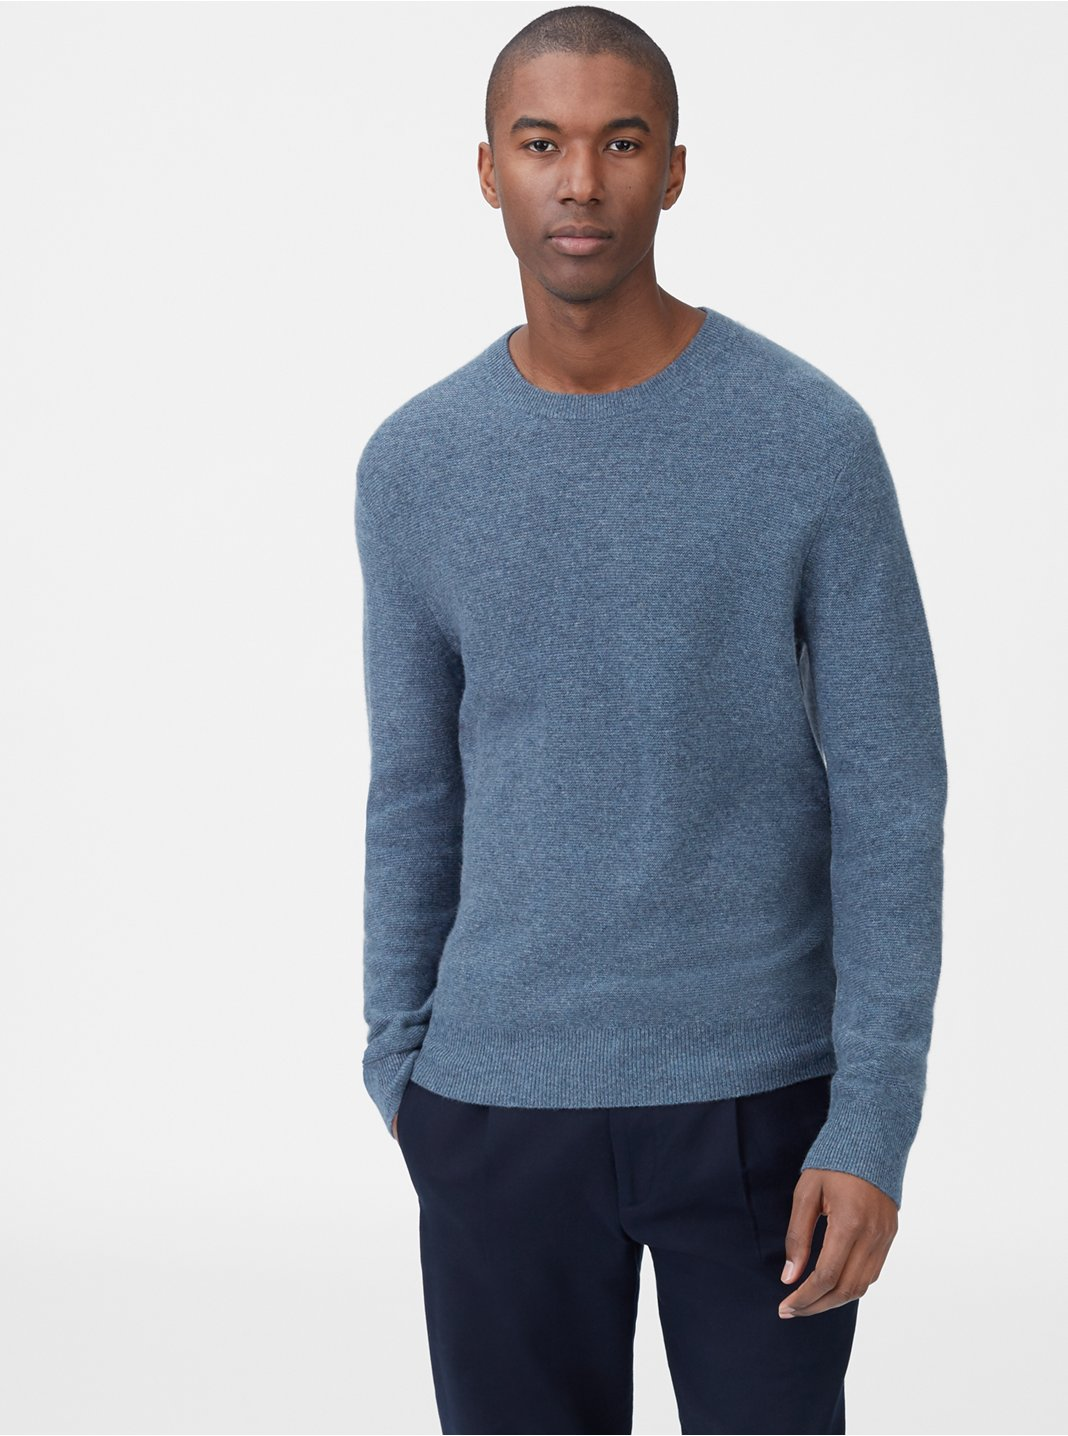 Cashmere Links Crew Sweater